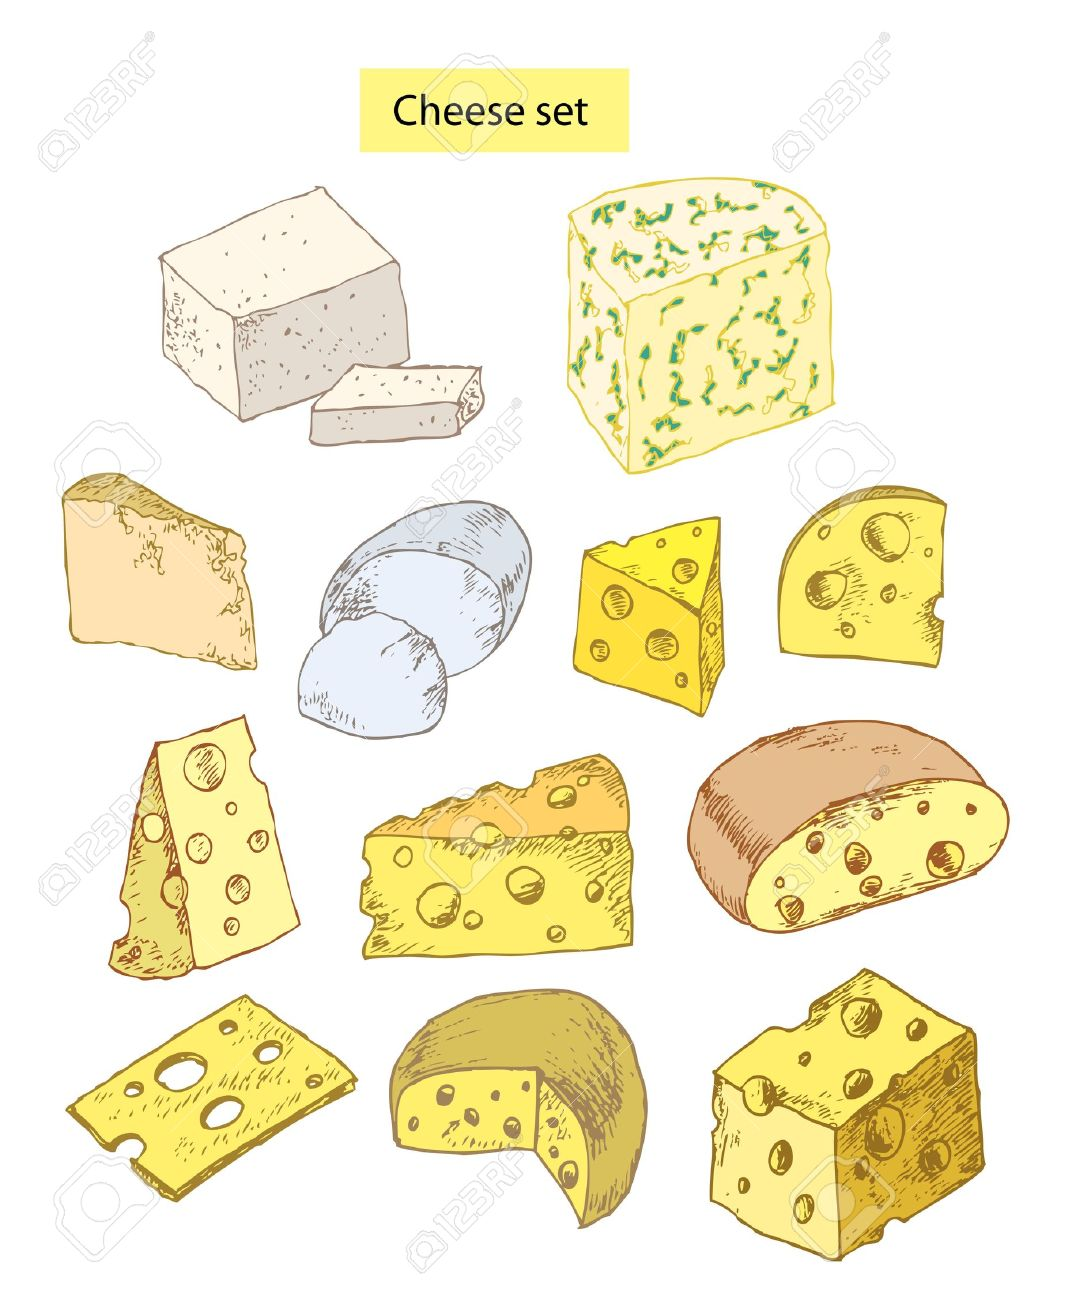 Drawn cheese #11